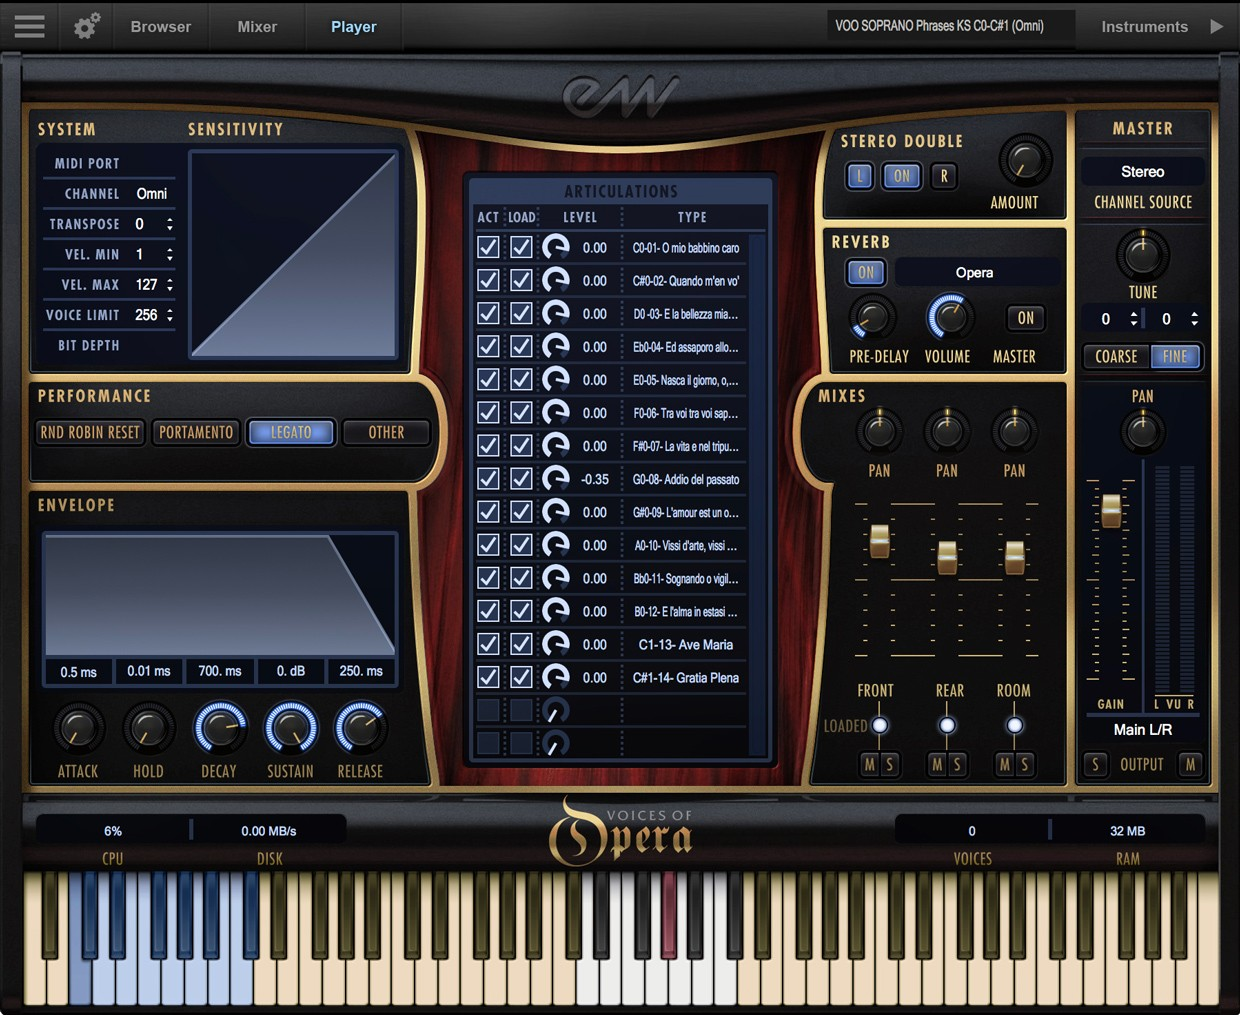 Voices of Opera GUI Screen